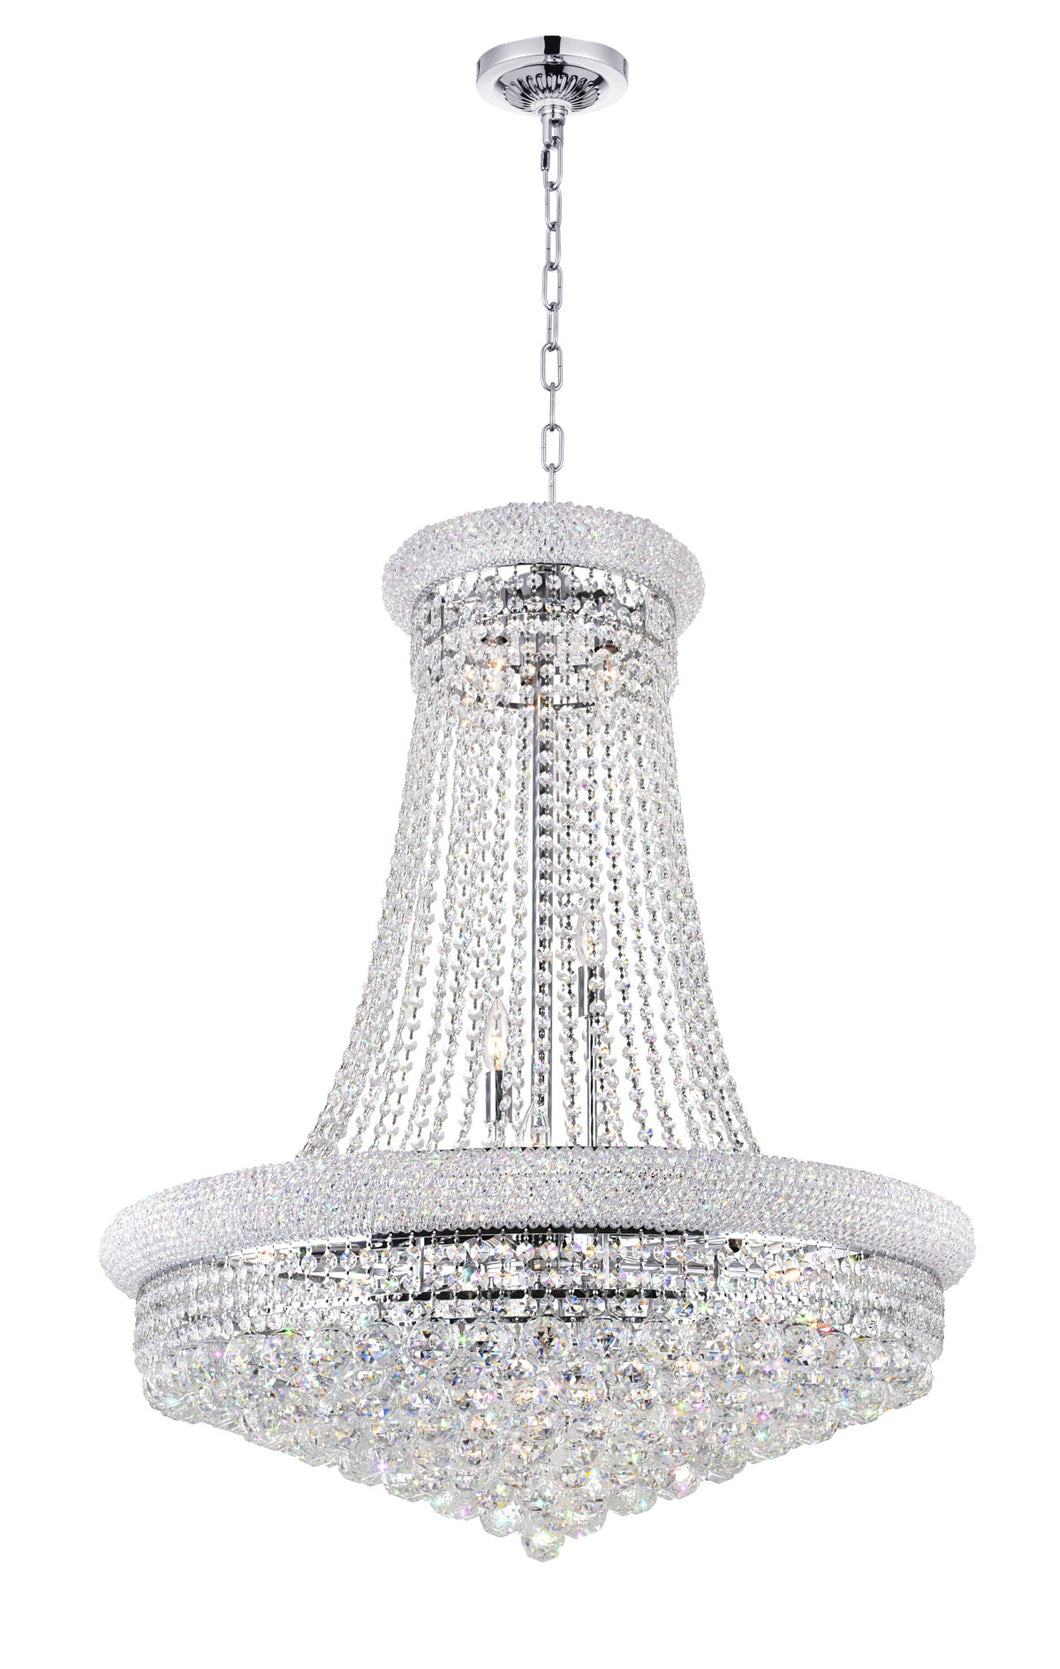 19 Light Down Chandelier with Chrome finish